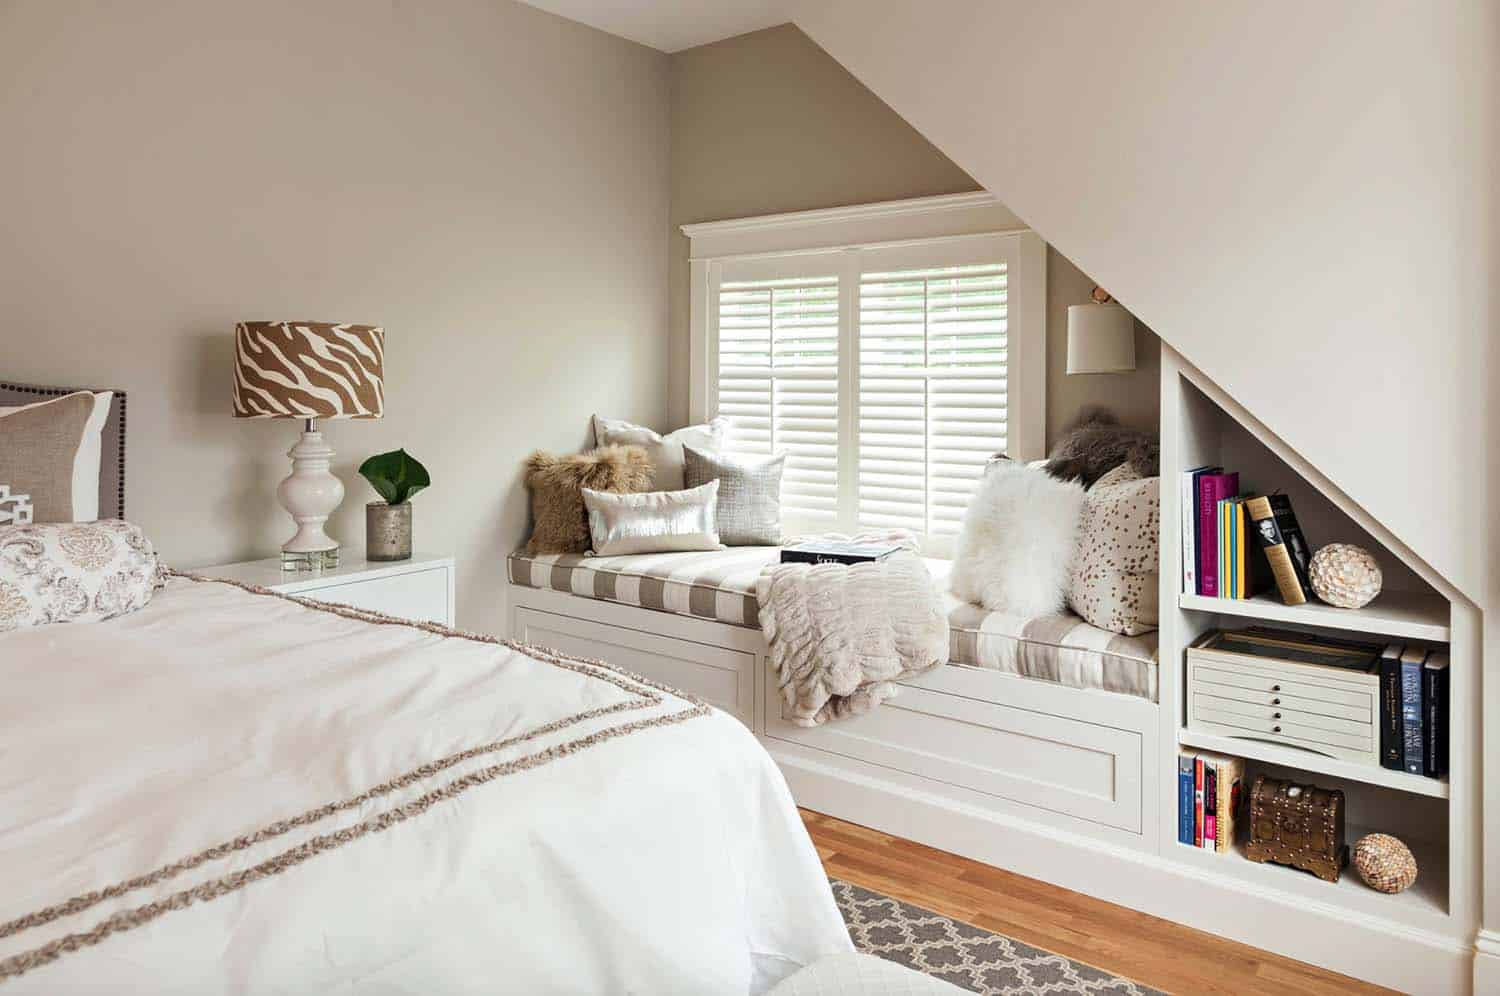 Cozy Reading Nooks For Lounging-30-1 Kindesign